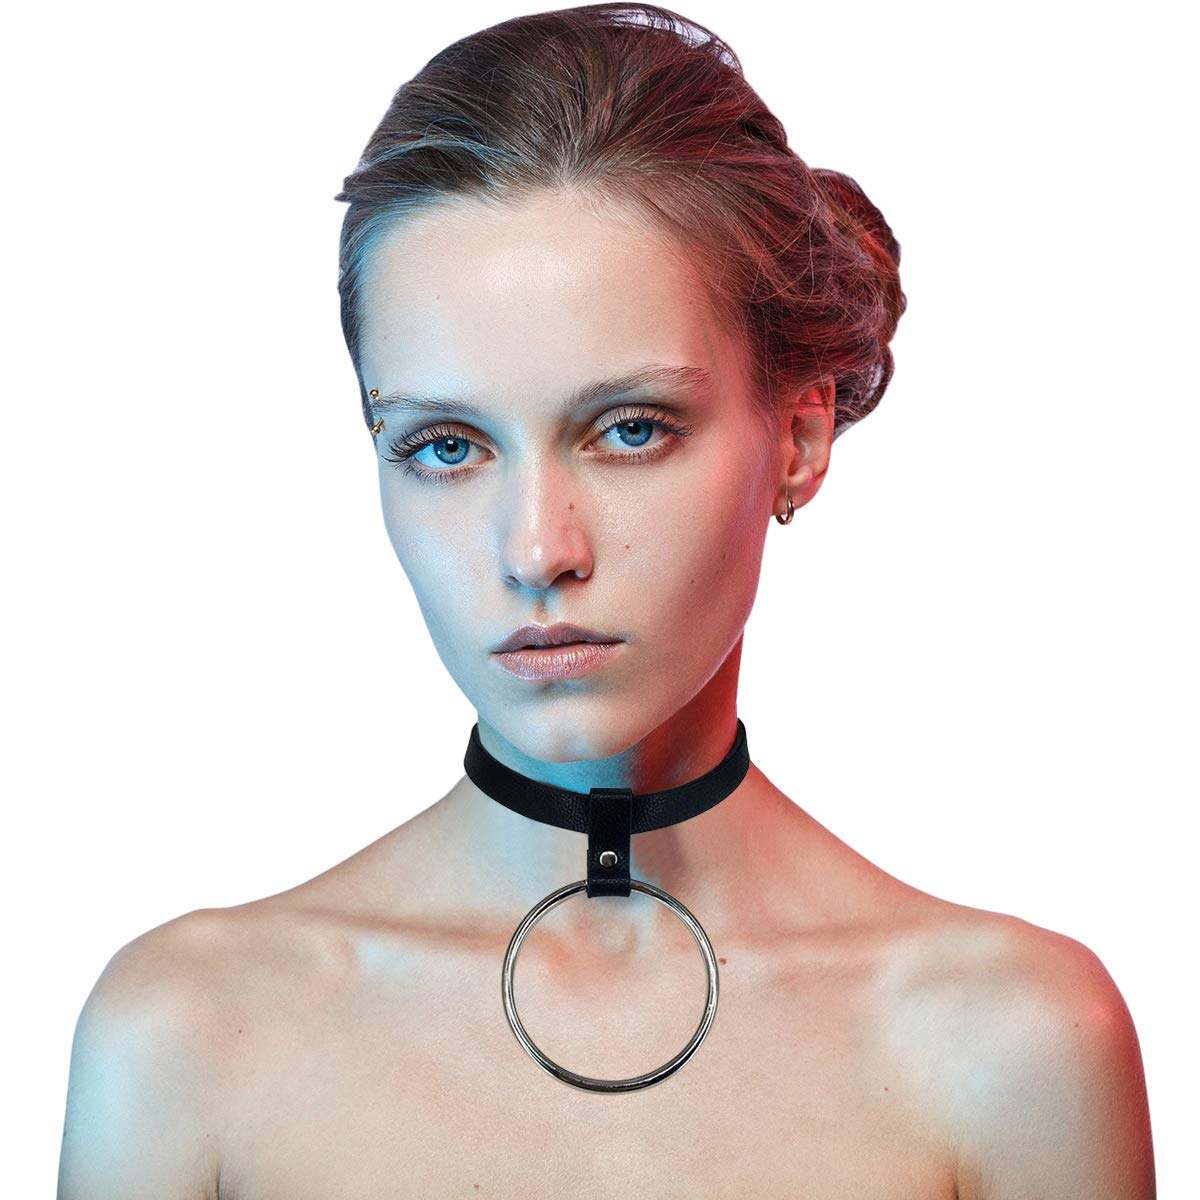 e5595c4b1bdc9 Homelex Punk Leather Choker Necklace Gothic Black O-Ring Collar For ...